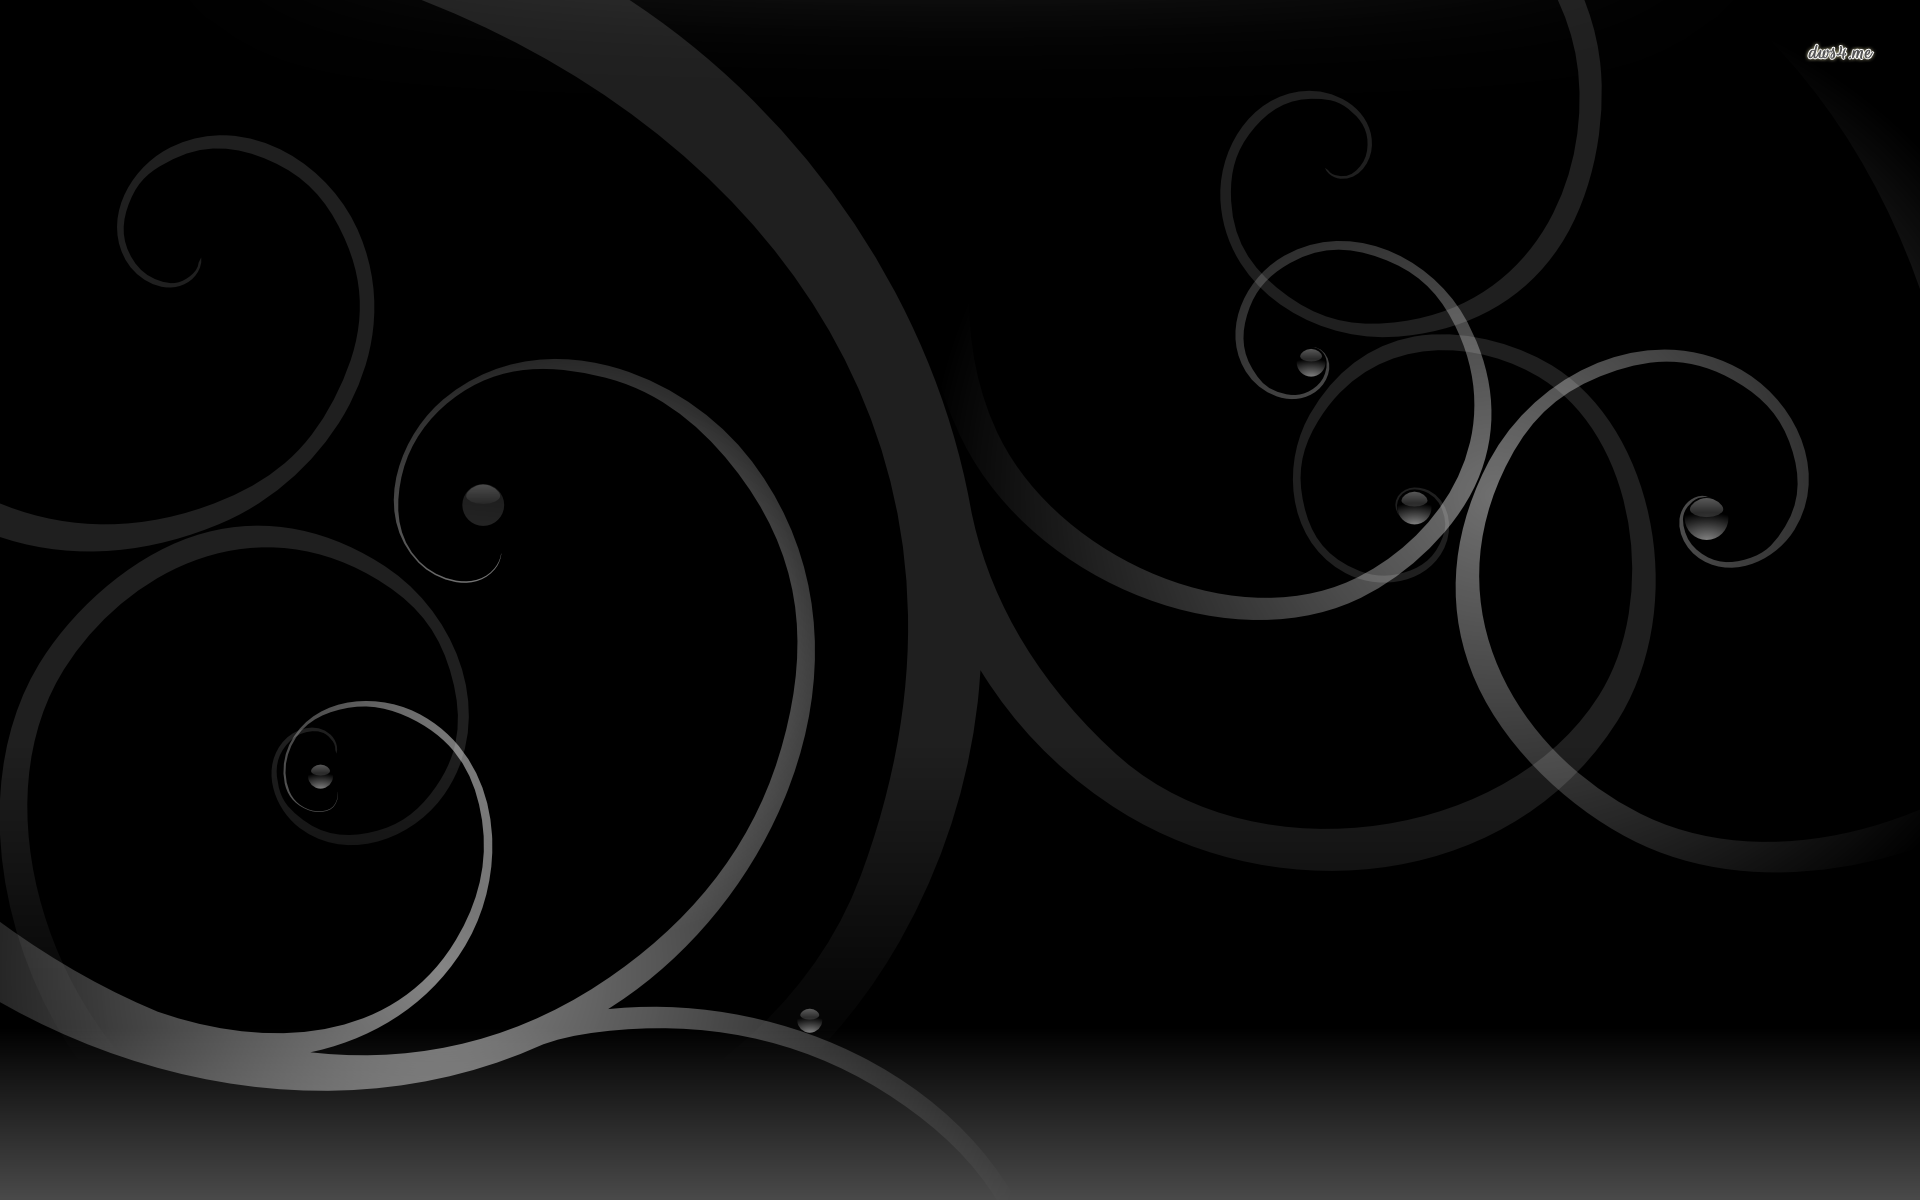 Nice HD Wallpapers Collection of Swirl - 1920x1200, 10.11.13